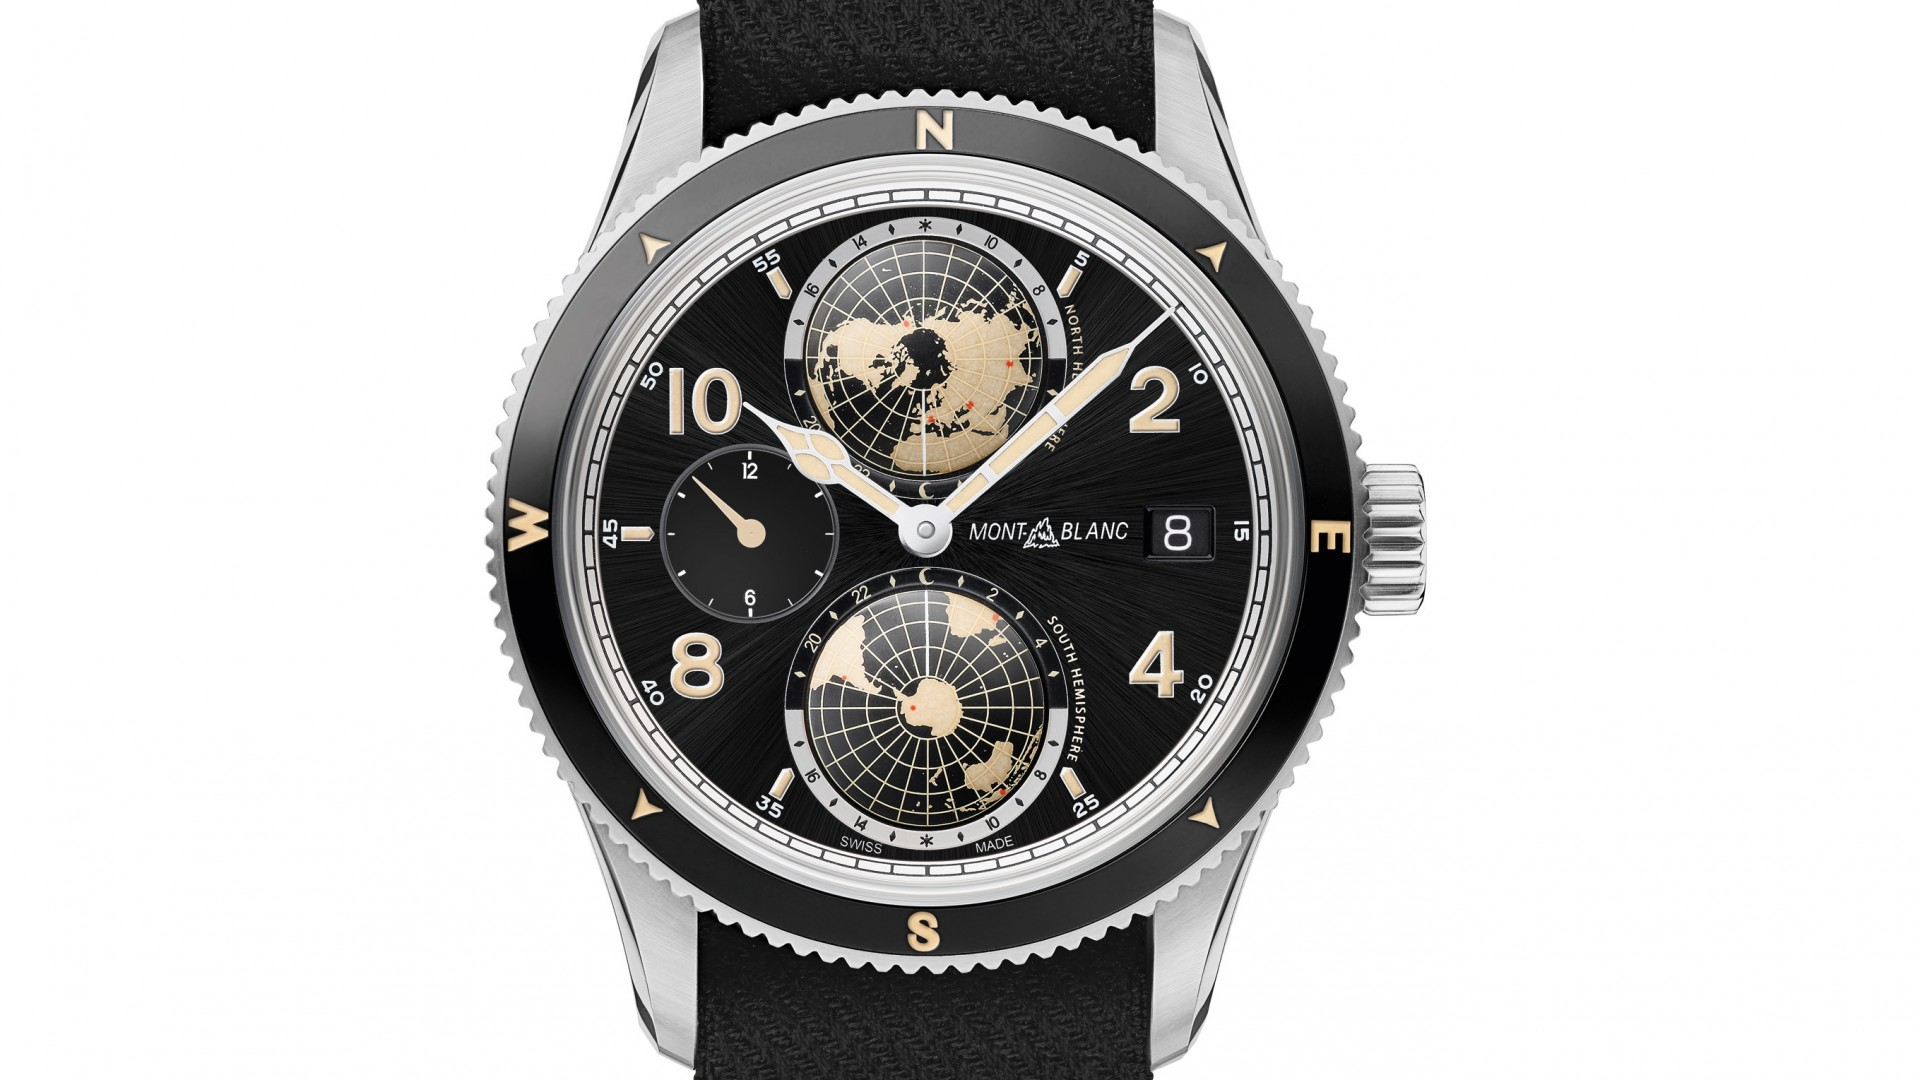 Montblanc 1858 Geosphere dual-time watch, SIHH 2018